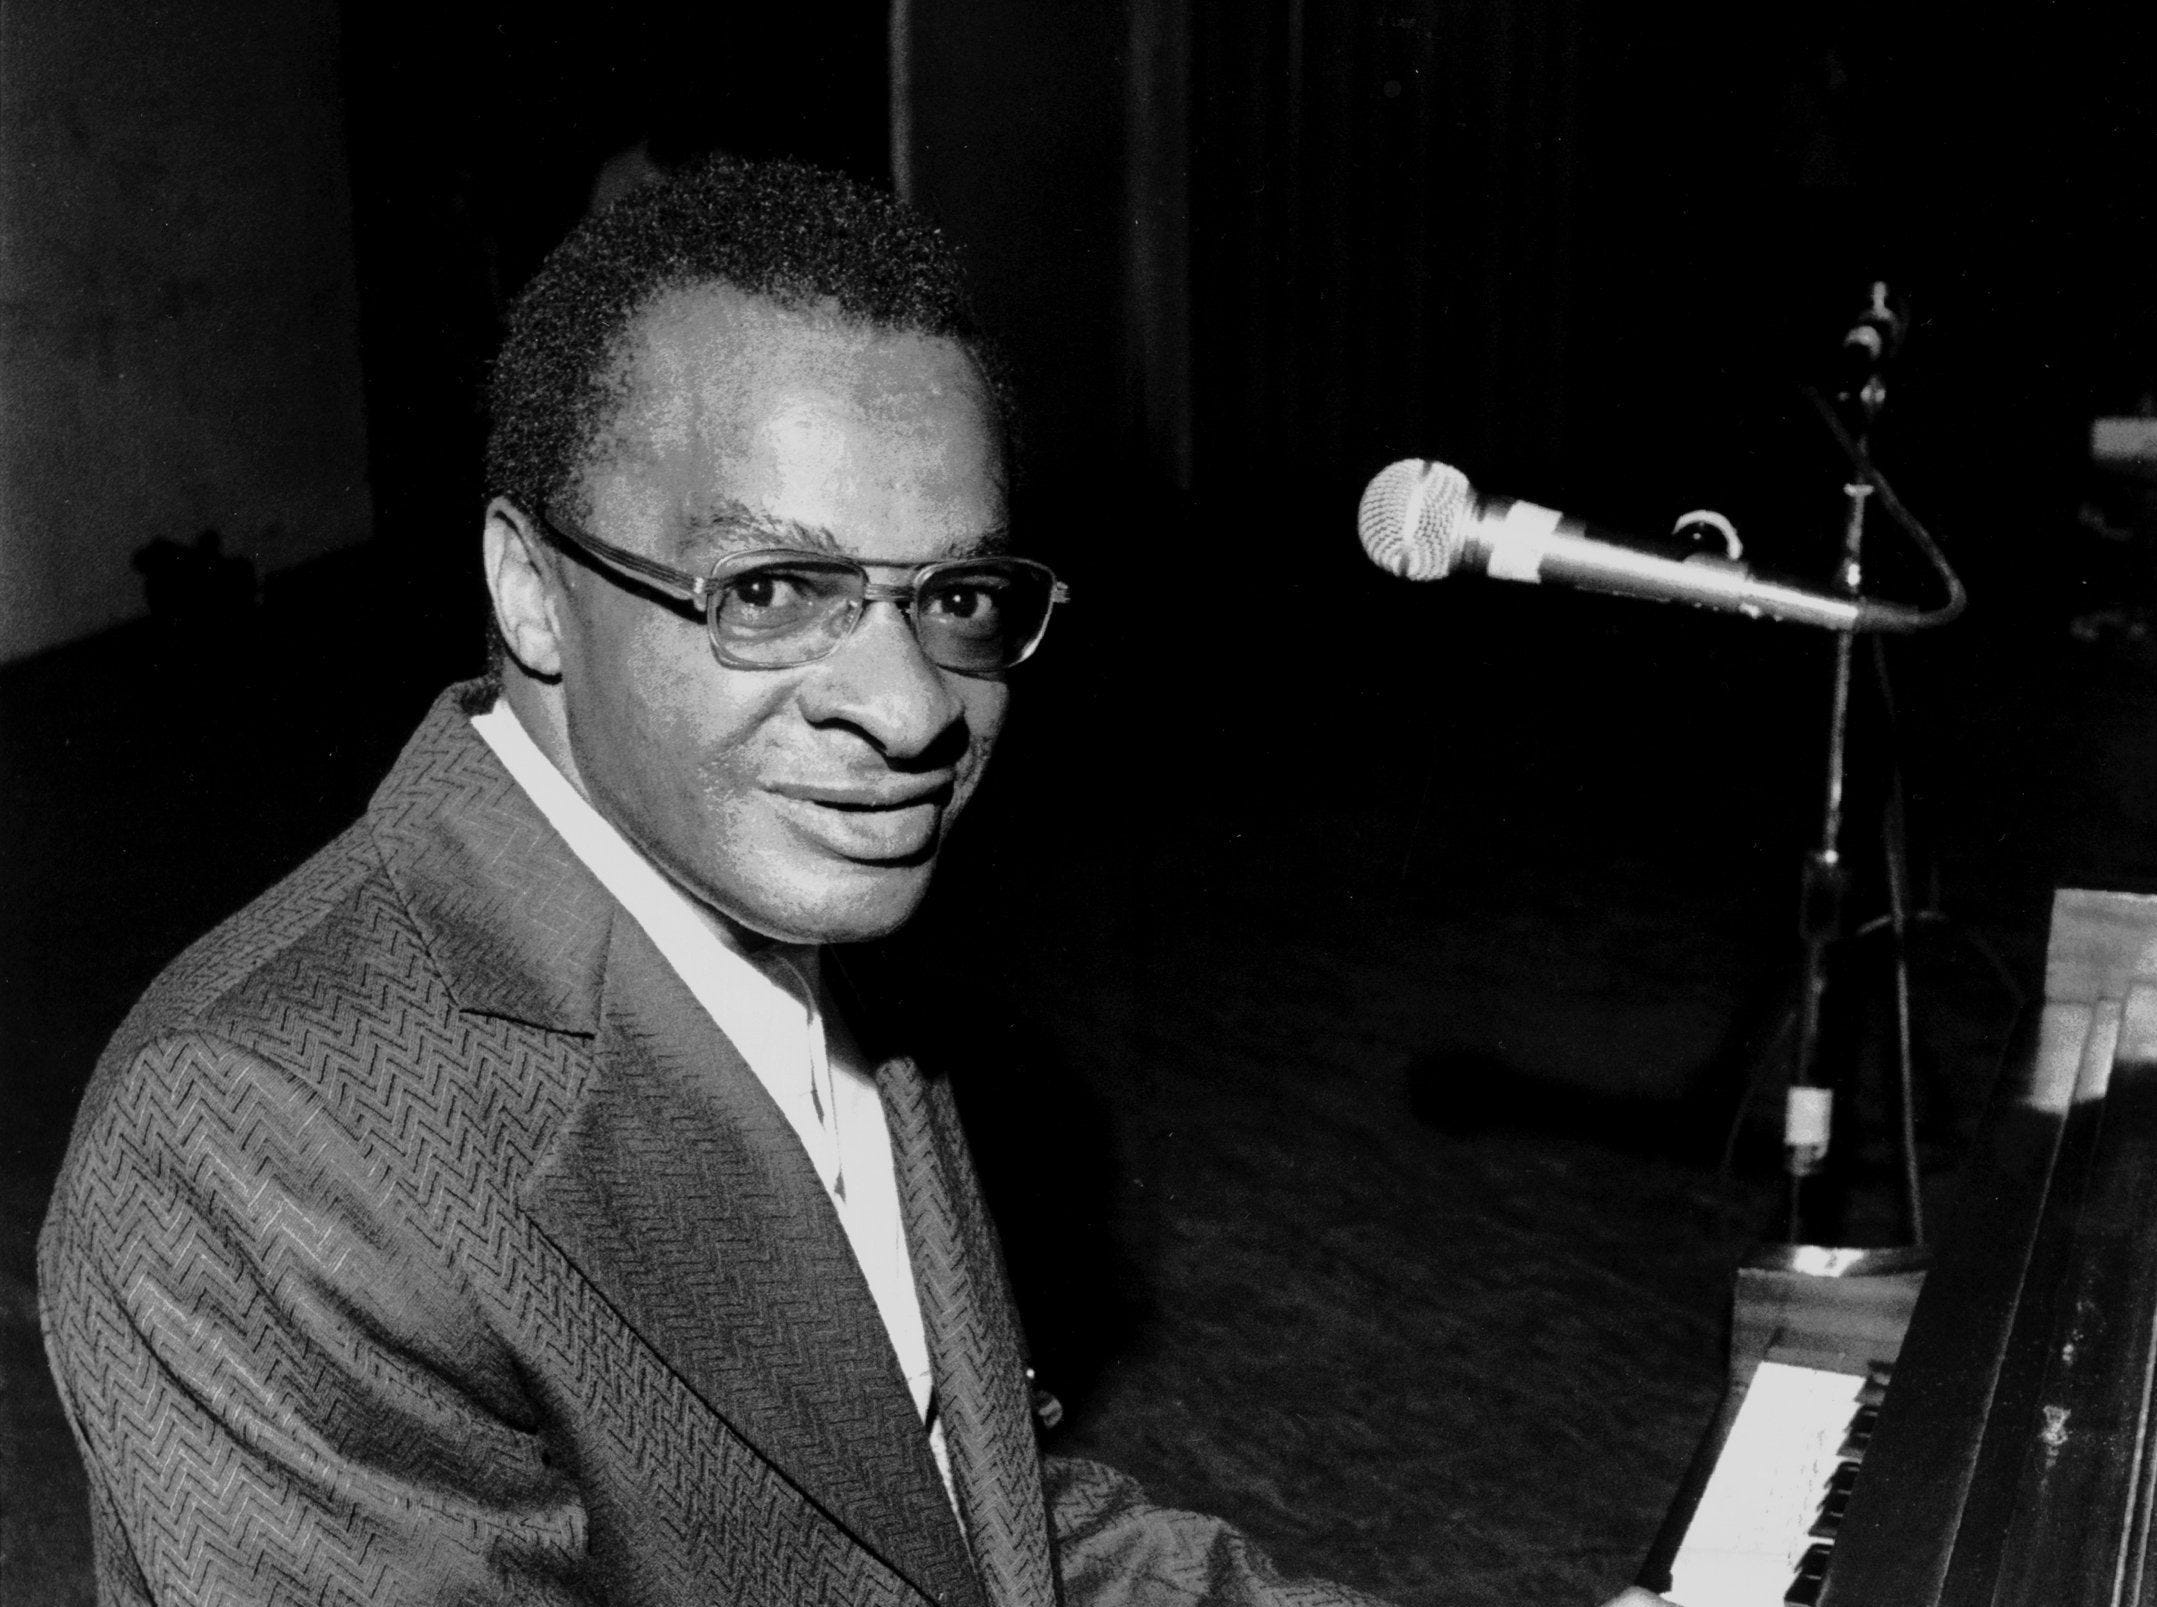 """Phineas Newborn Jr., in photograph dated August 28, 1975. His mother said Count Basie nicknamed him """"Bright Eyes"""" when he was a baby because his eyes lit up when the music started. In the mid-1950s, after earning a reputation in local clubs as the top jazz pianist in Memphis, Newborn took New York by storm. Critic Leonard Feather placed Newborn among the three best jazz pianists of all time. Newborn died in Memphis in 1989 at the age of 58."""